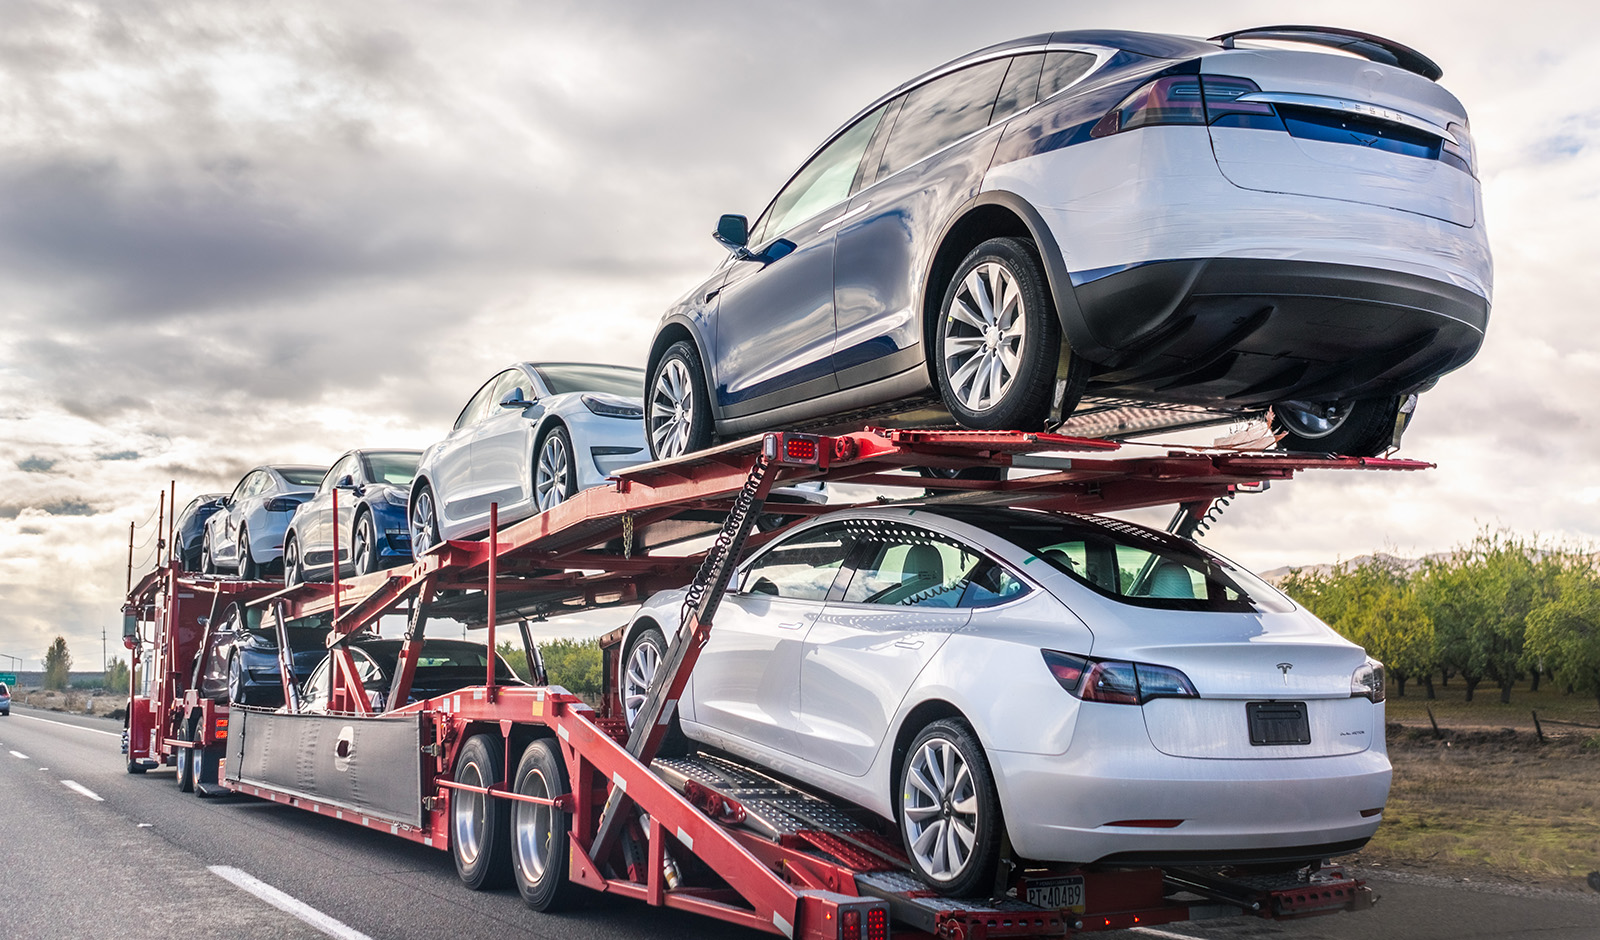 dos-and-donts-for-moving-a-car-car-on-cross-country-tow-main-image